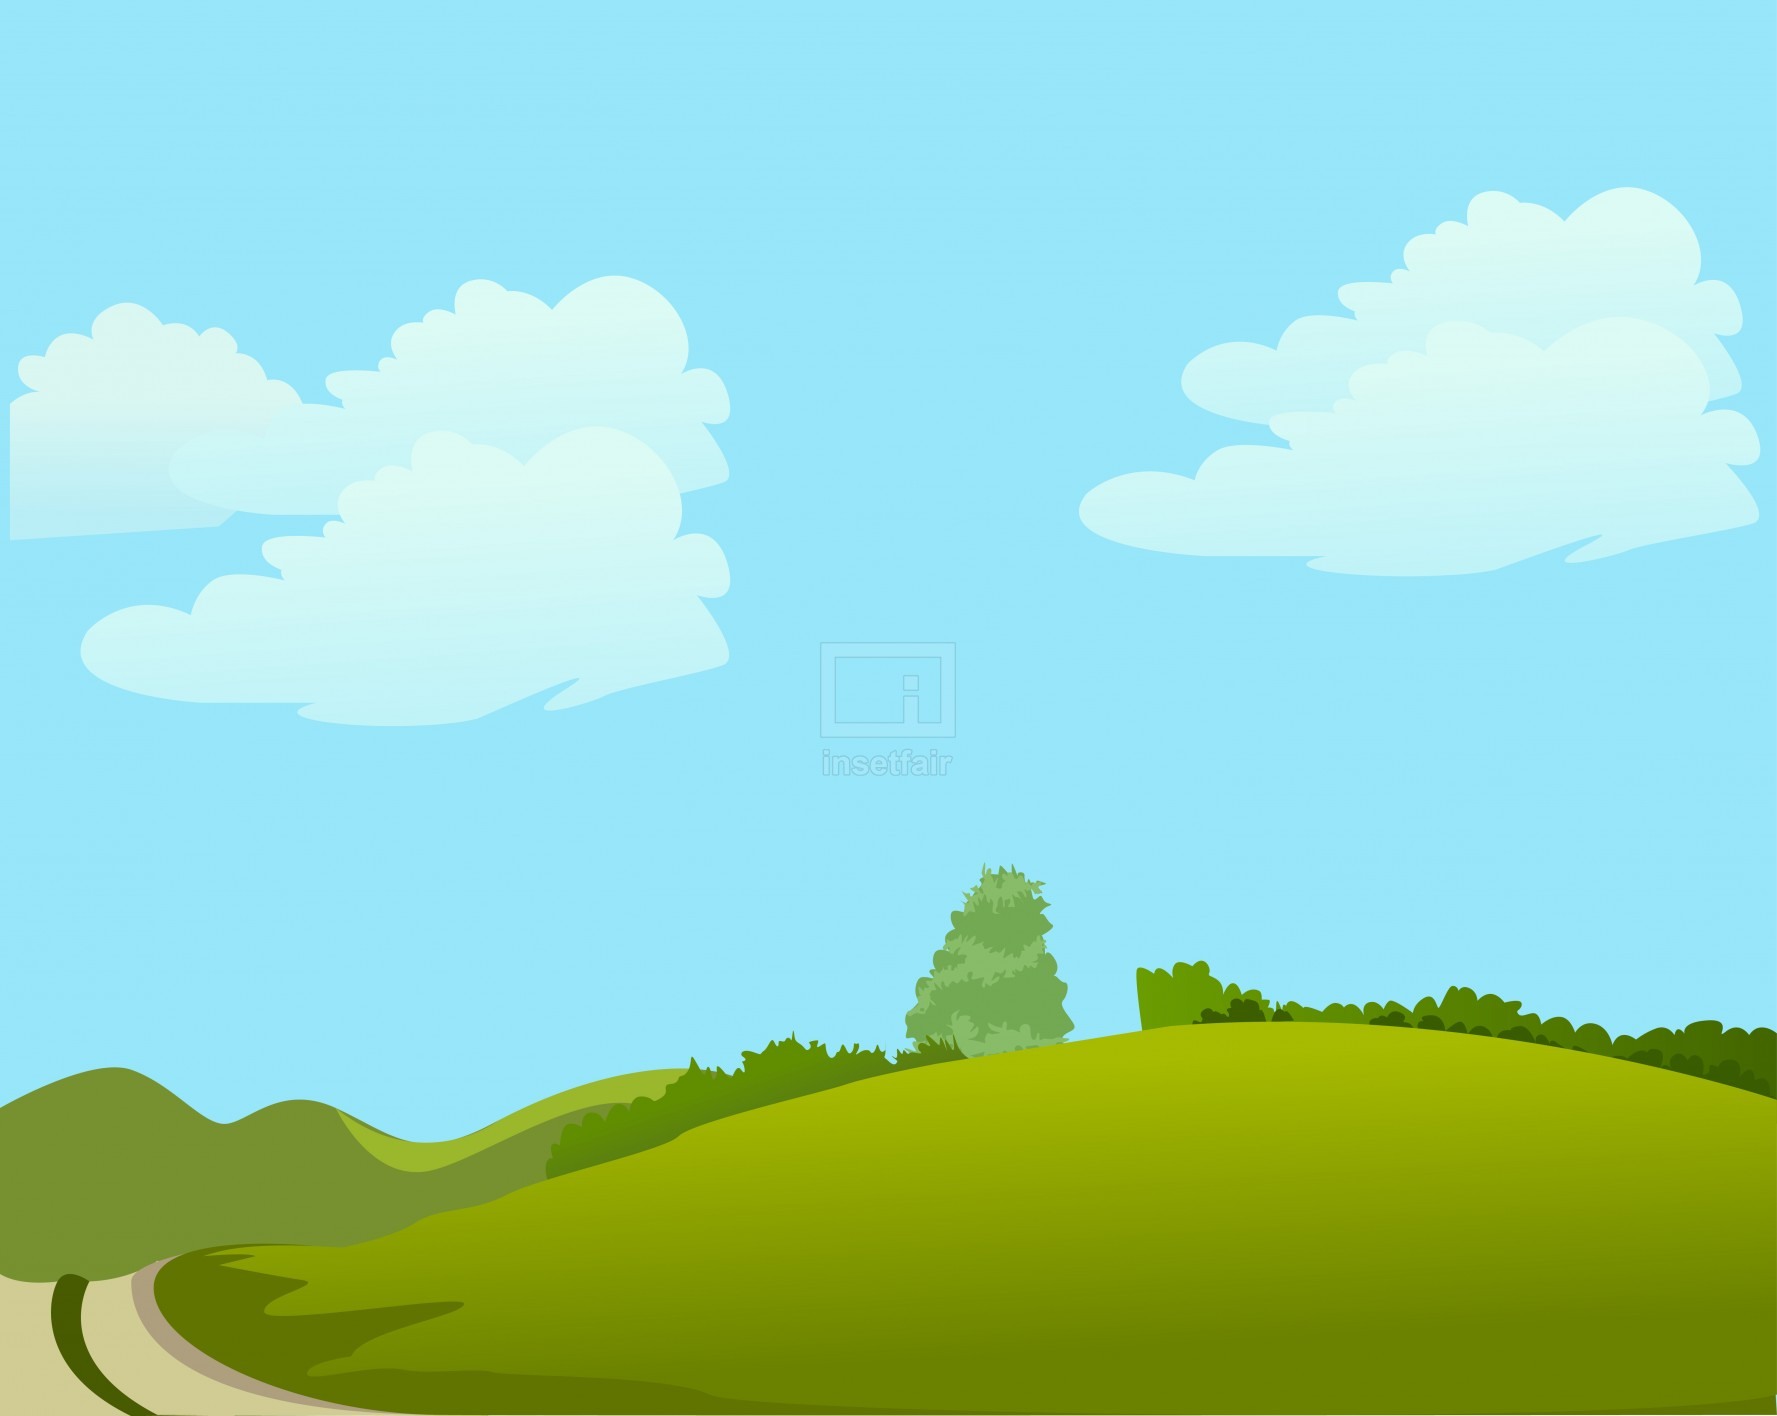 Hot summer season blue sky vector illustration AI source file free download